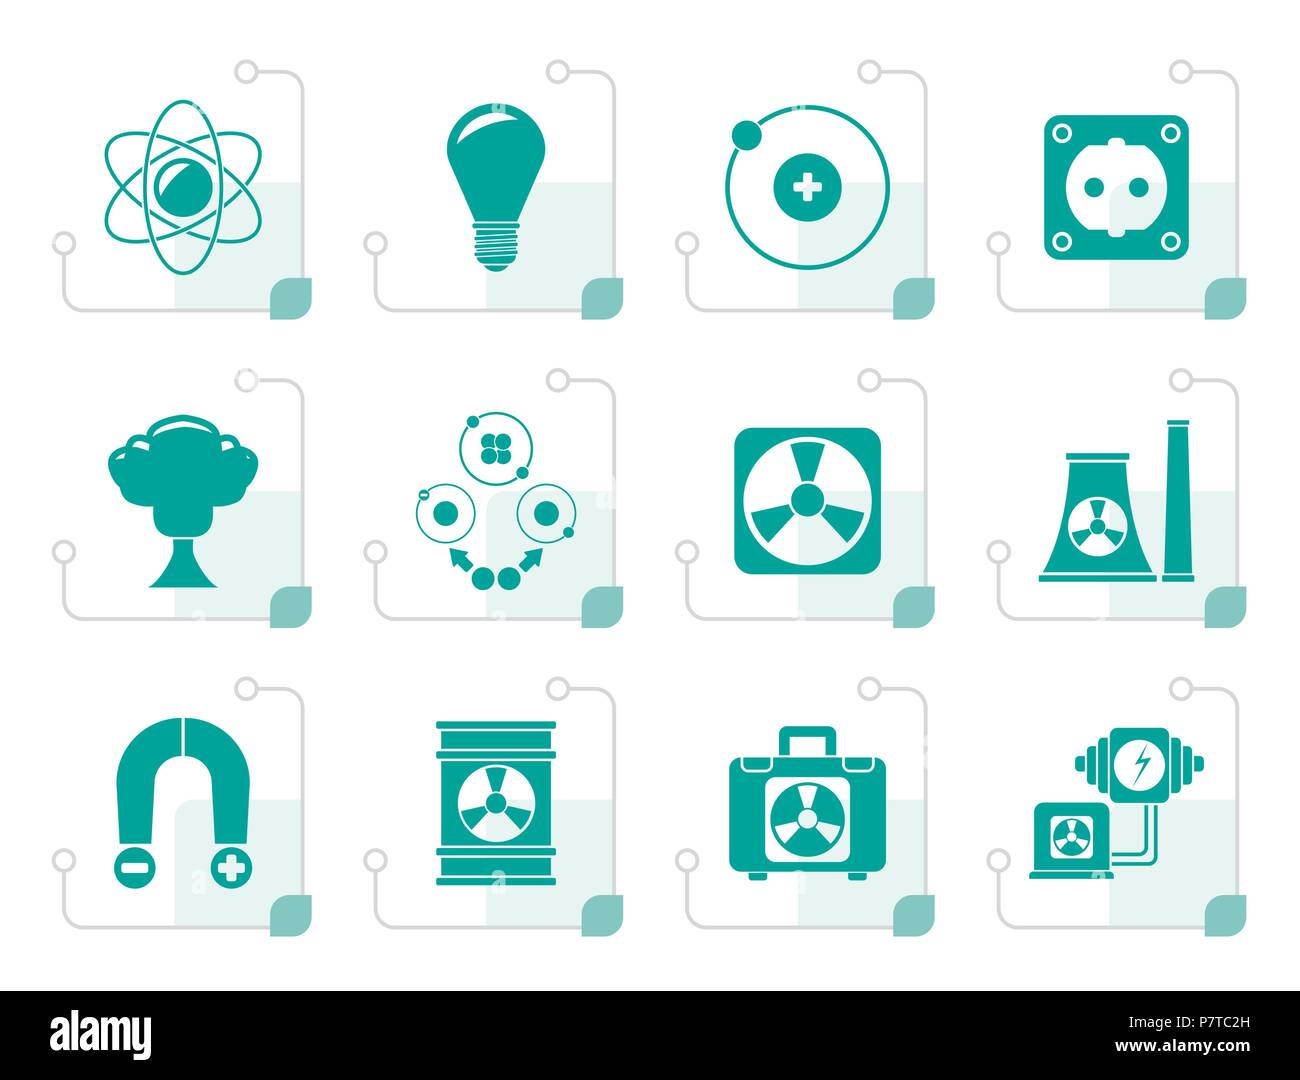 Stylized Atomic and Nuclear Energy Icons - vector icon set - Stock Vector